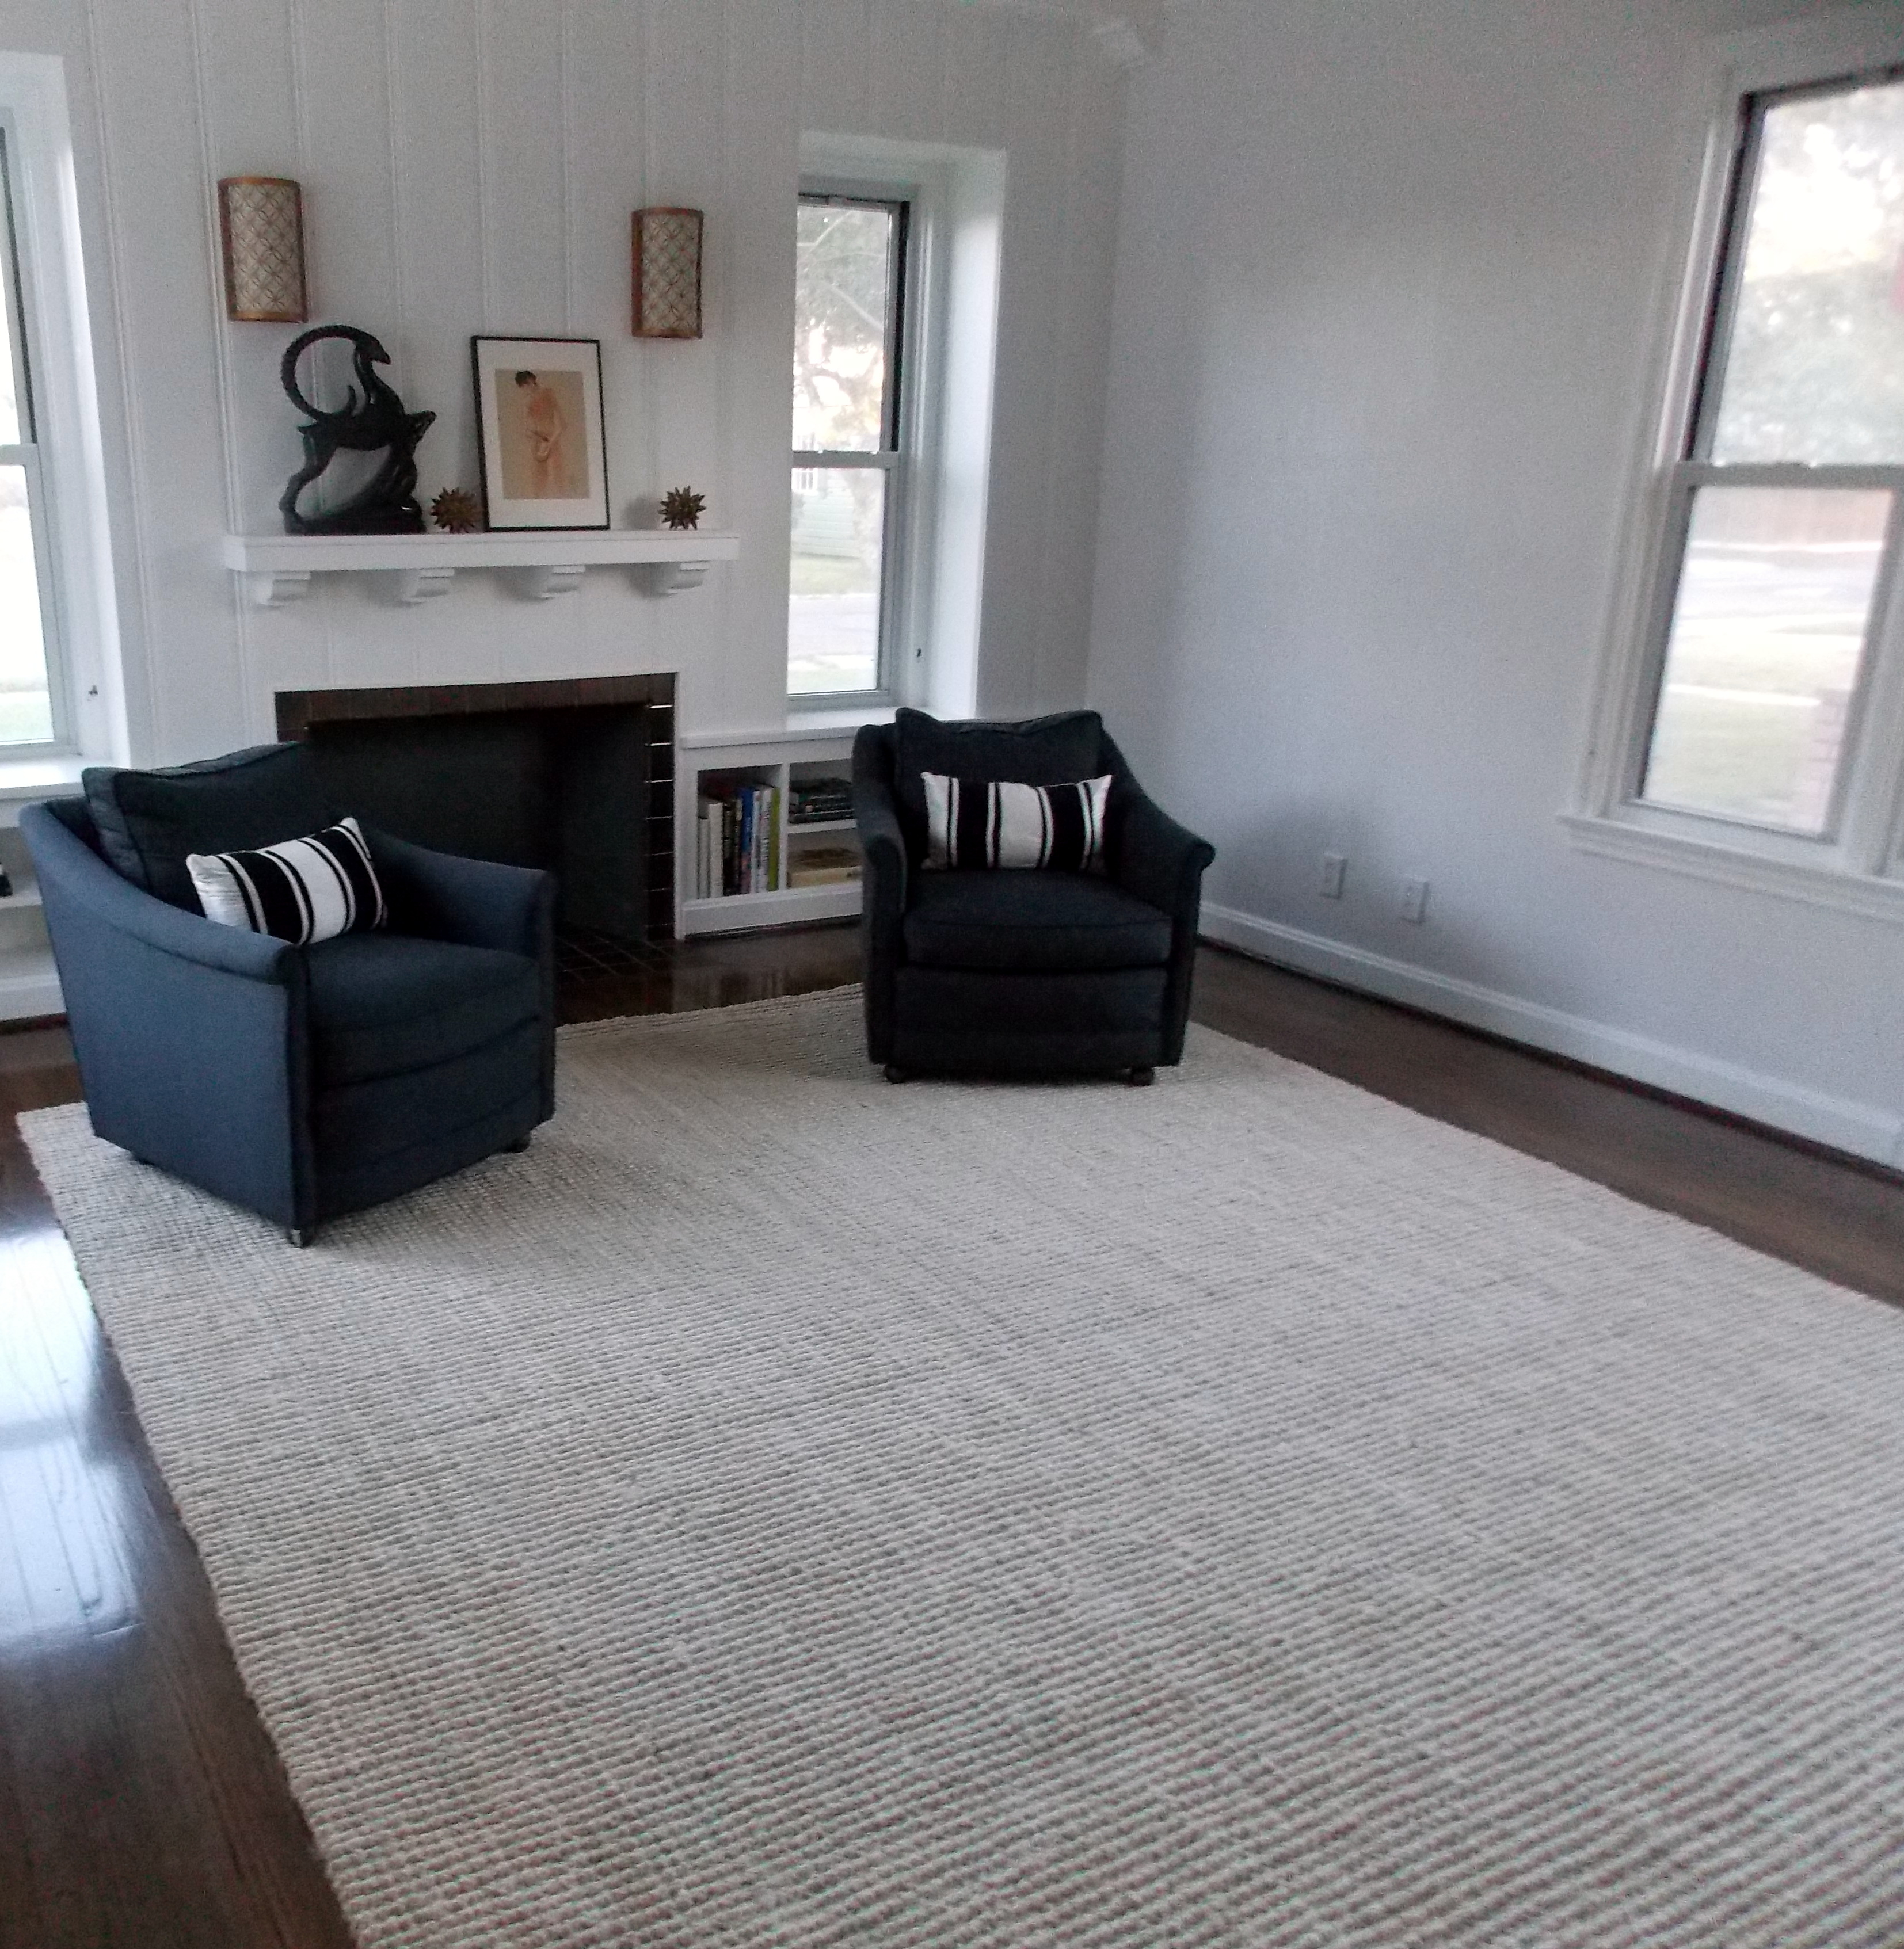 Jute Rug Living Room Easy Tips How To Clean Up Your Beautiful Jute Rugs Without Being